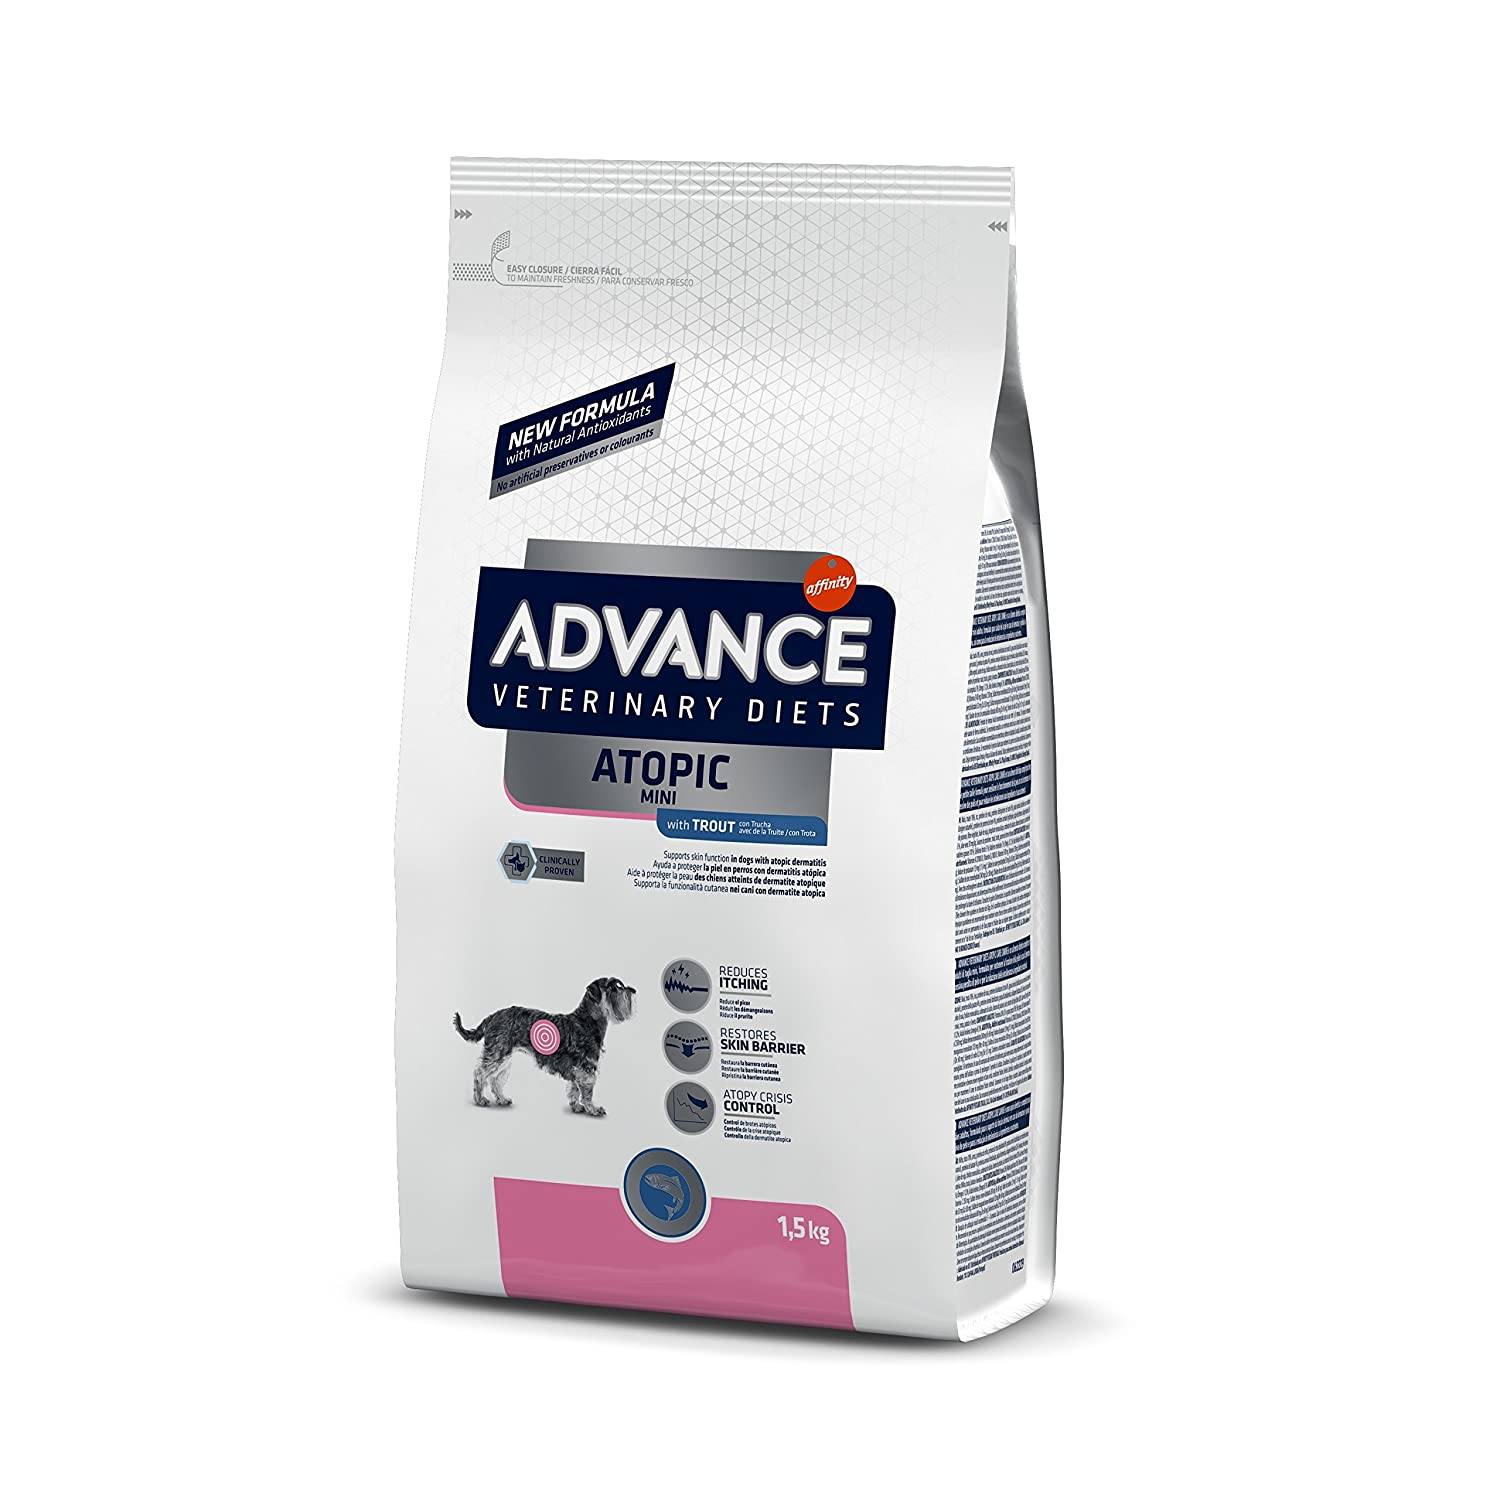 Advance atopic Mini, 1er Pack (1 x 1500 g): Amazon.es: Productos para mascotas